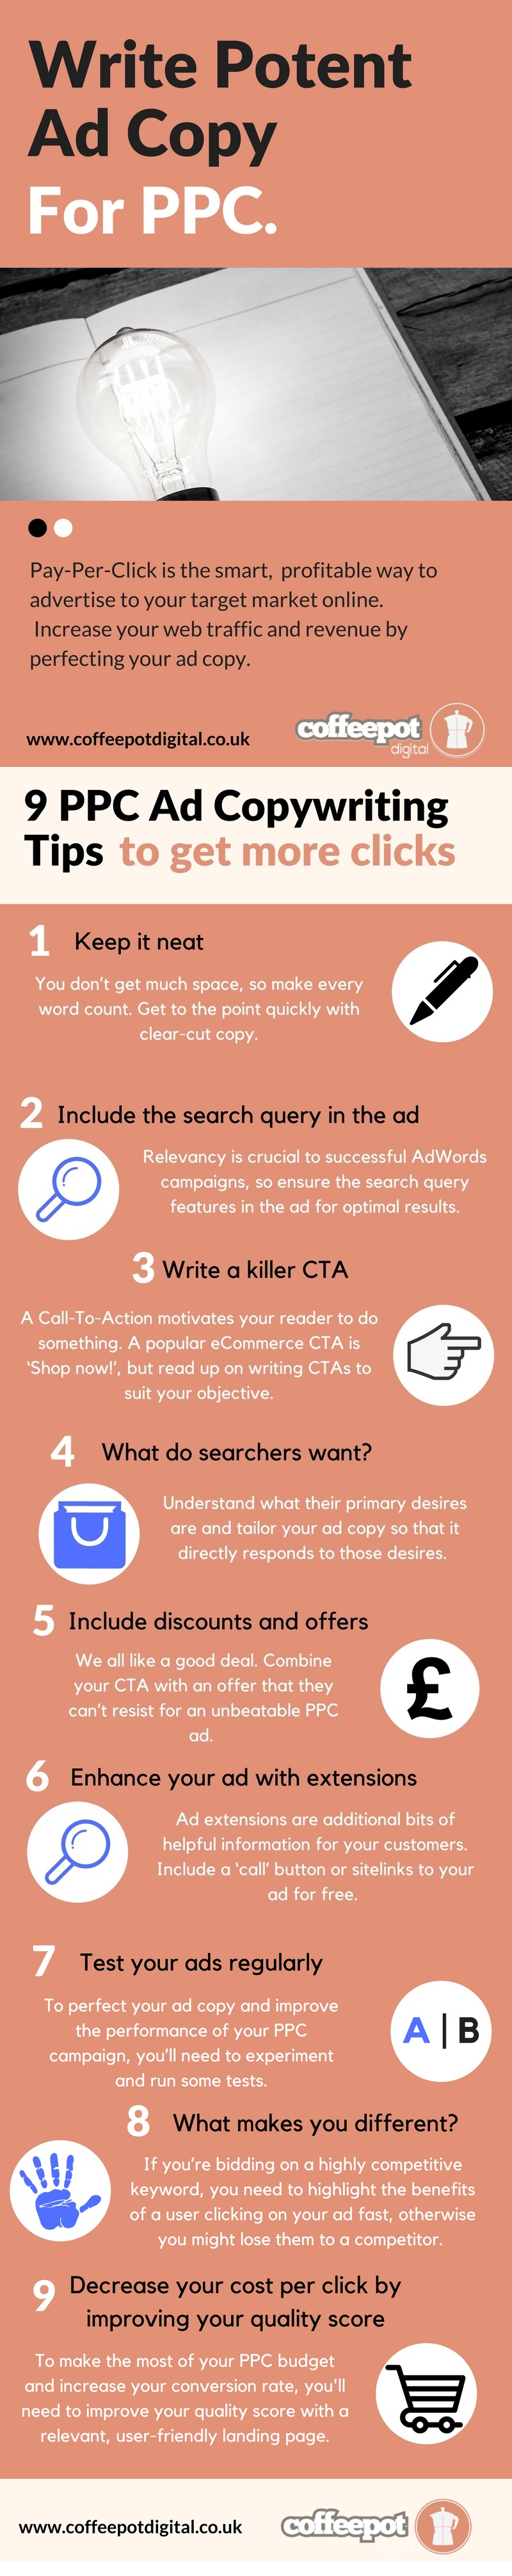 PPC services ad copy infographic